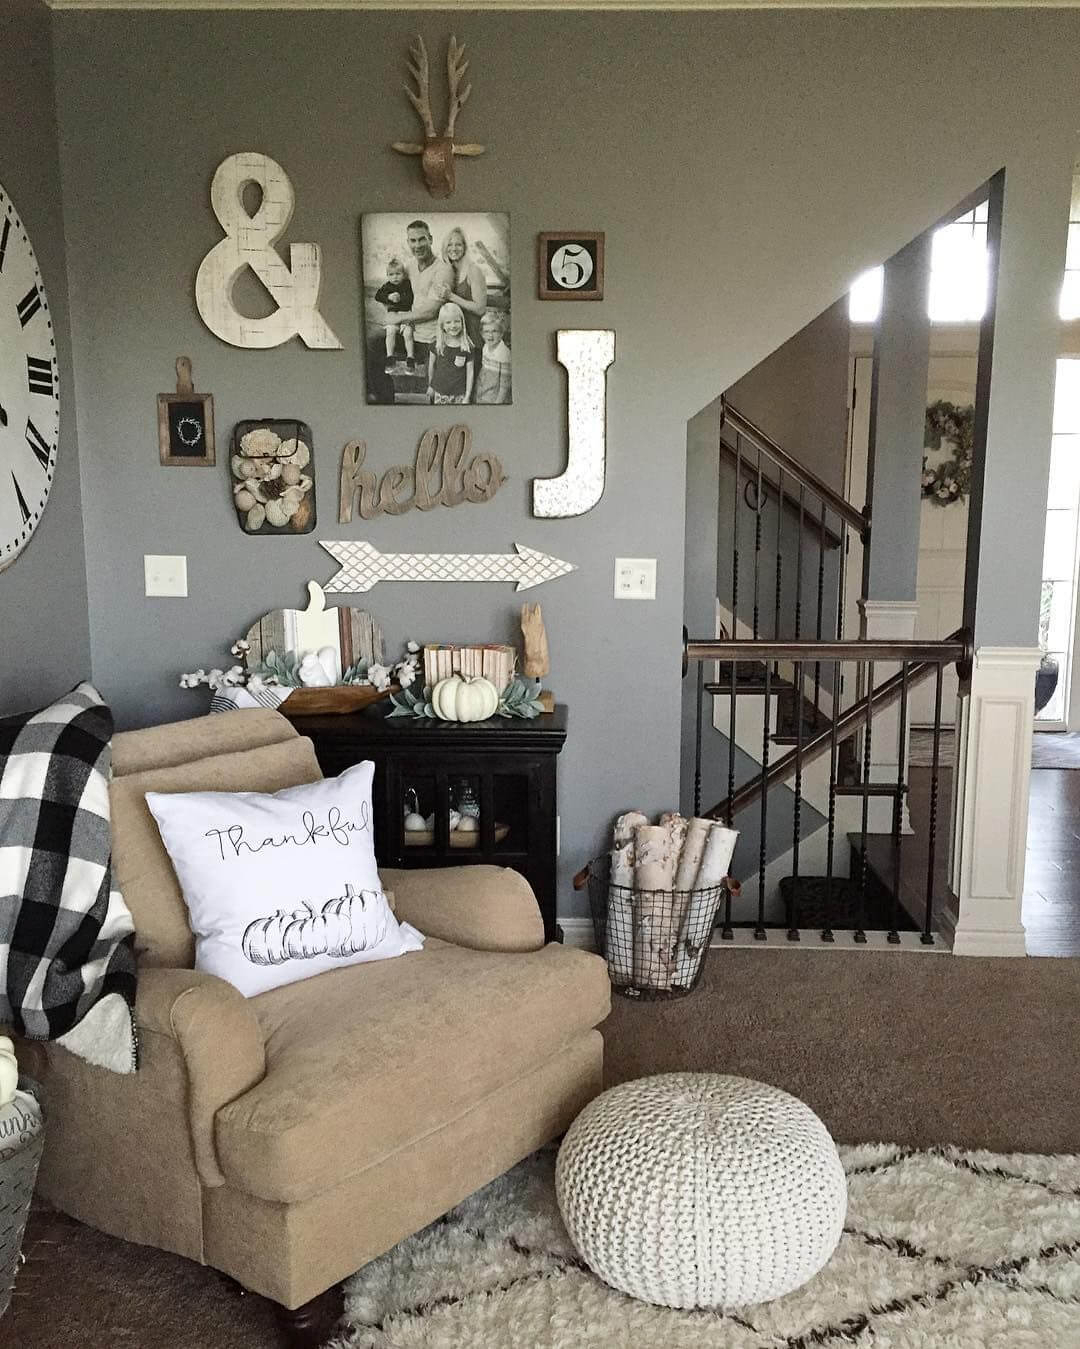 10 Famous Wall Decorating Ideas Living Room charming rustic living room wall decor ideas homebnc 2021